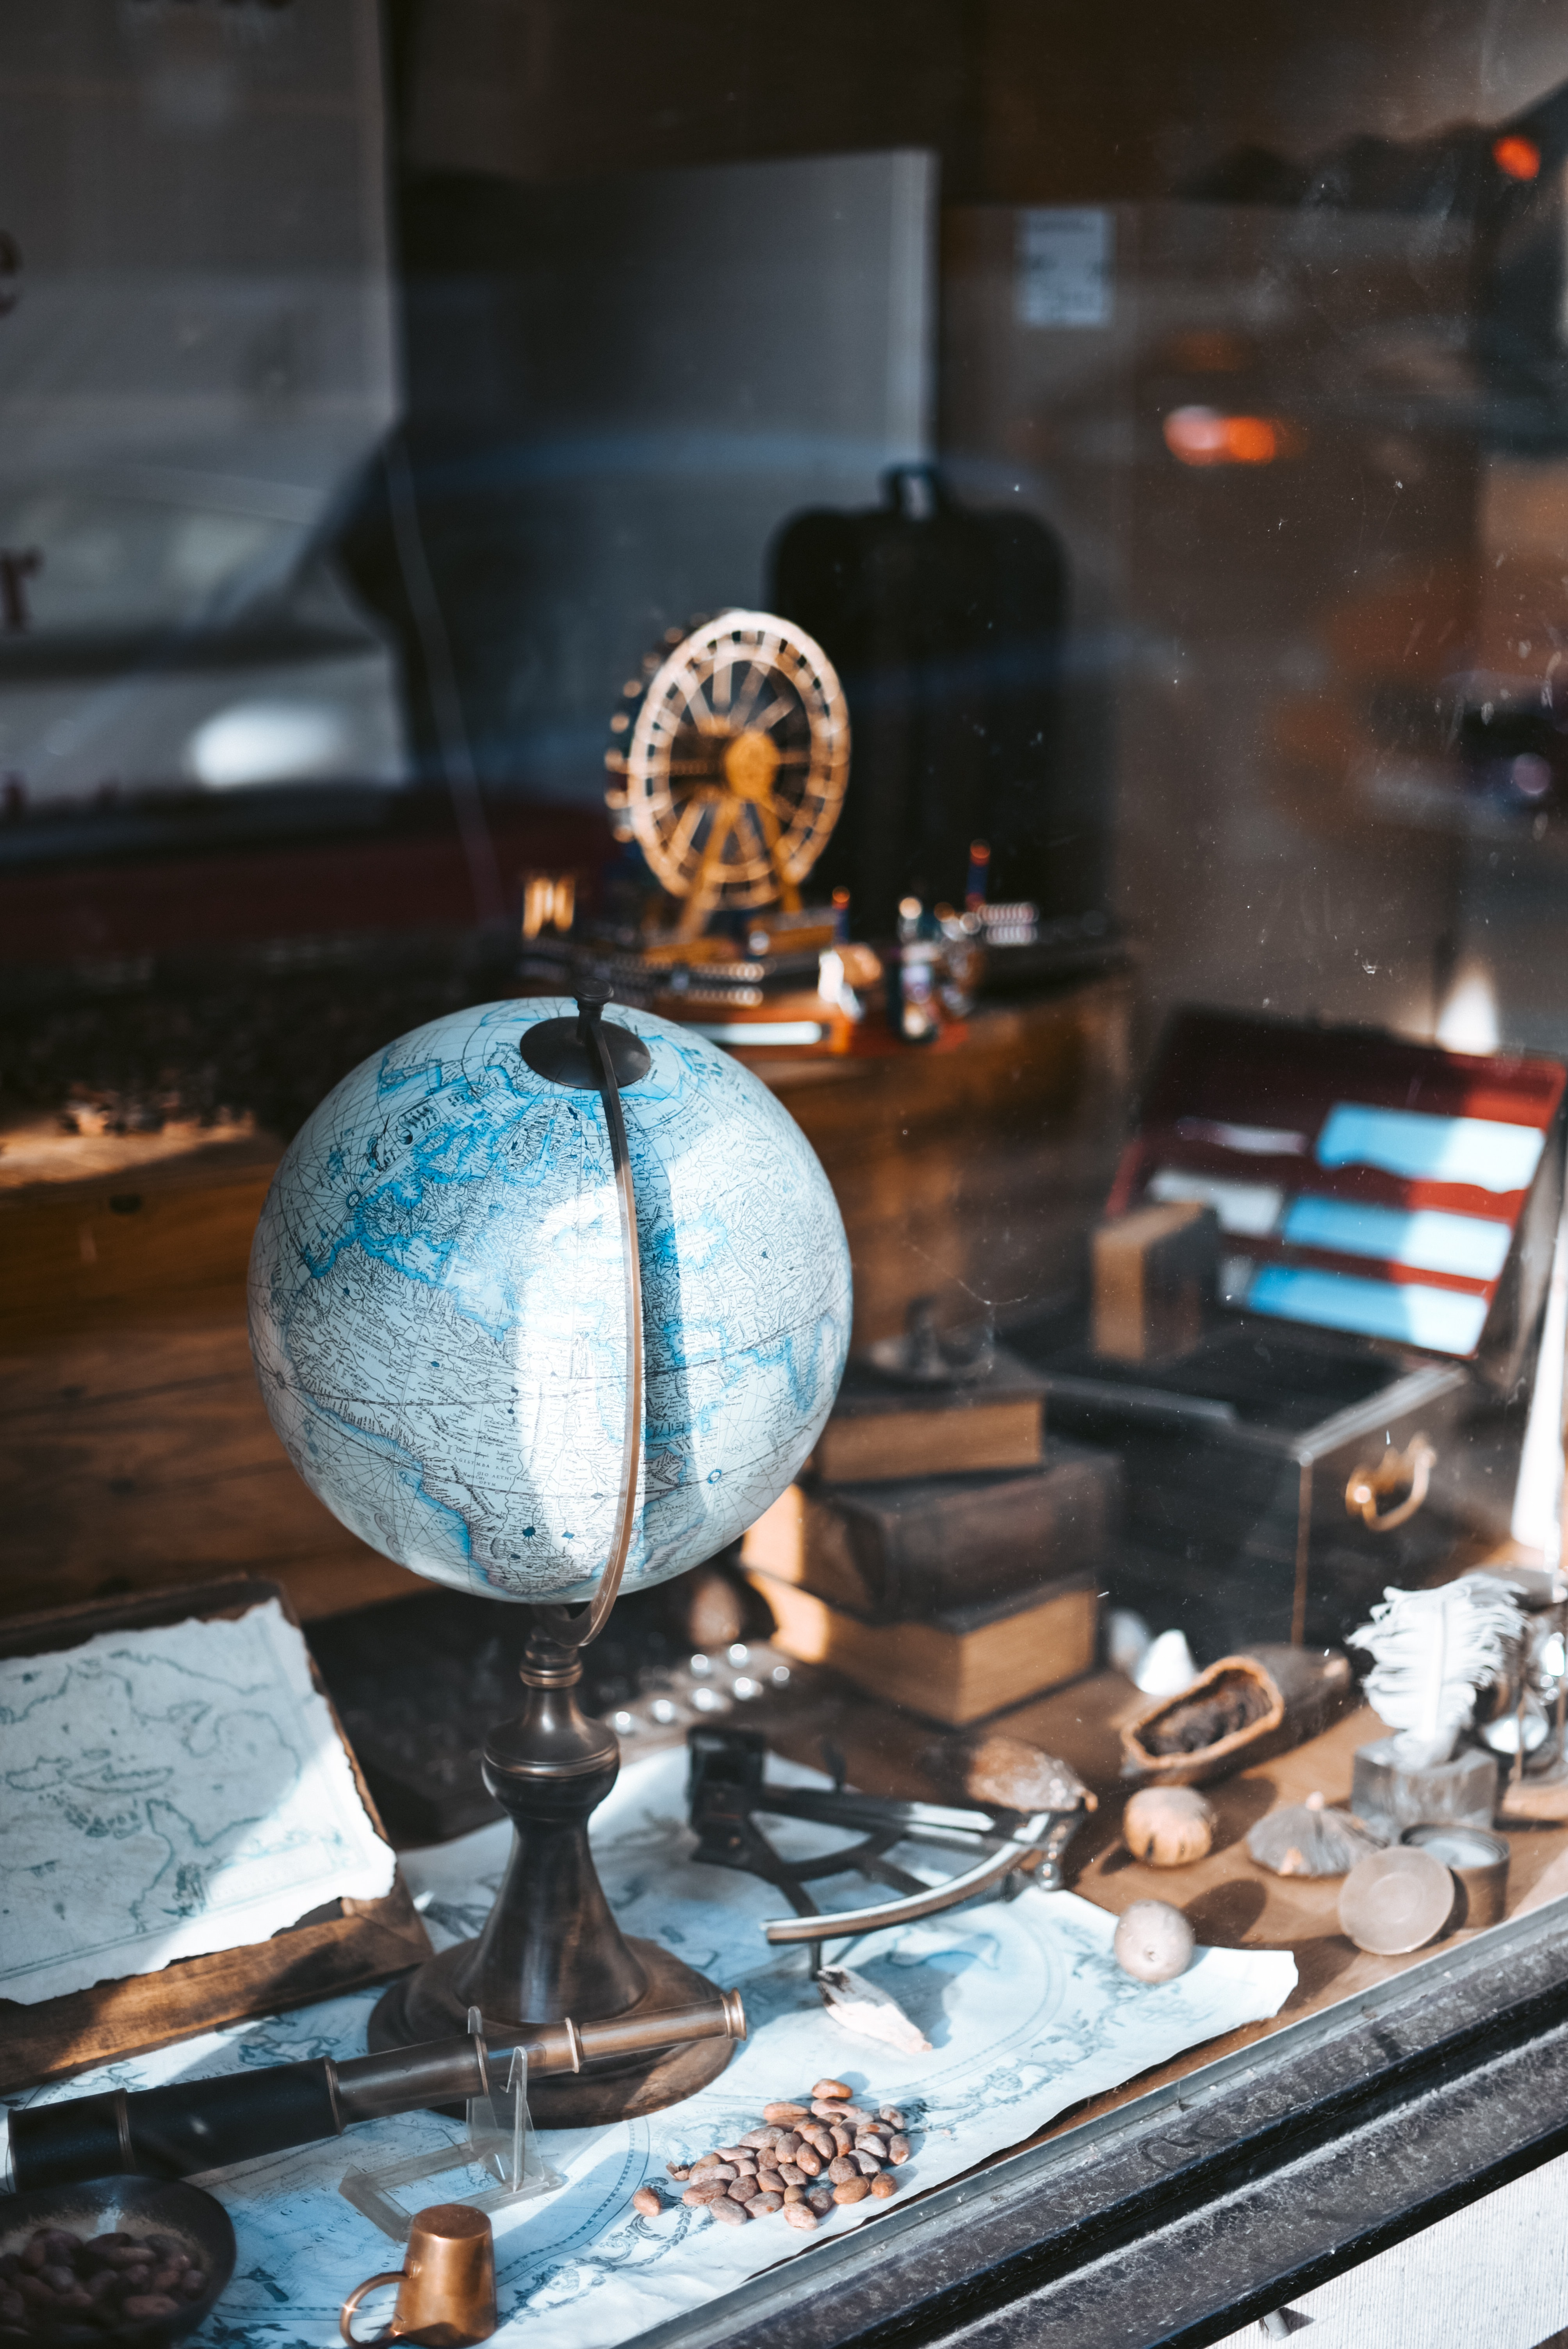 blue globe map on table